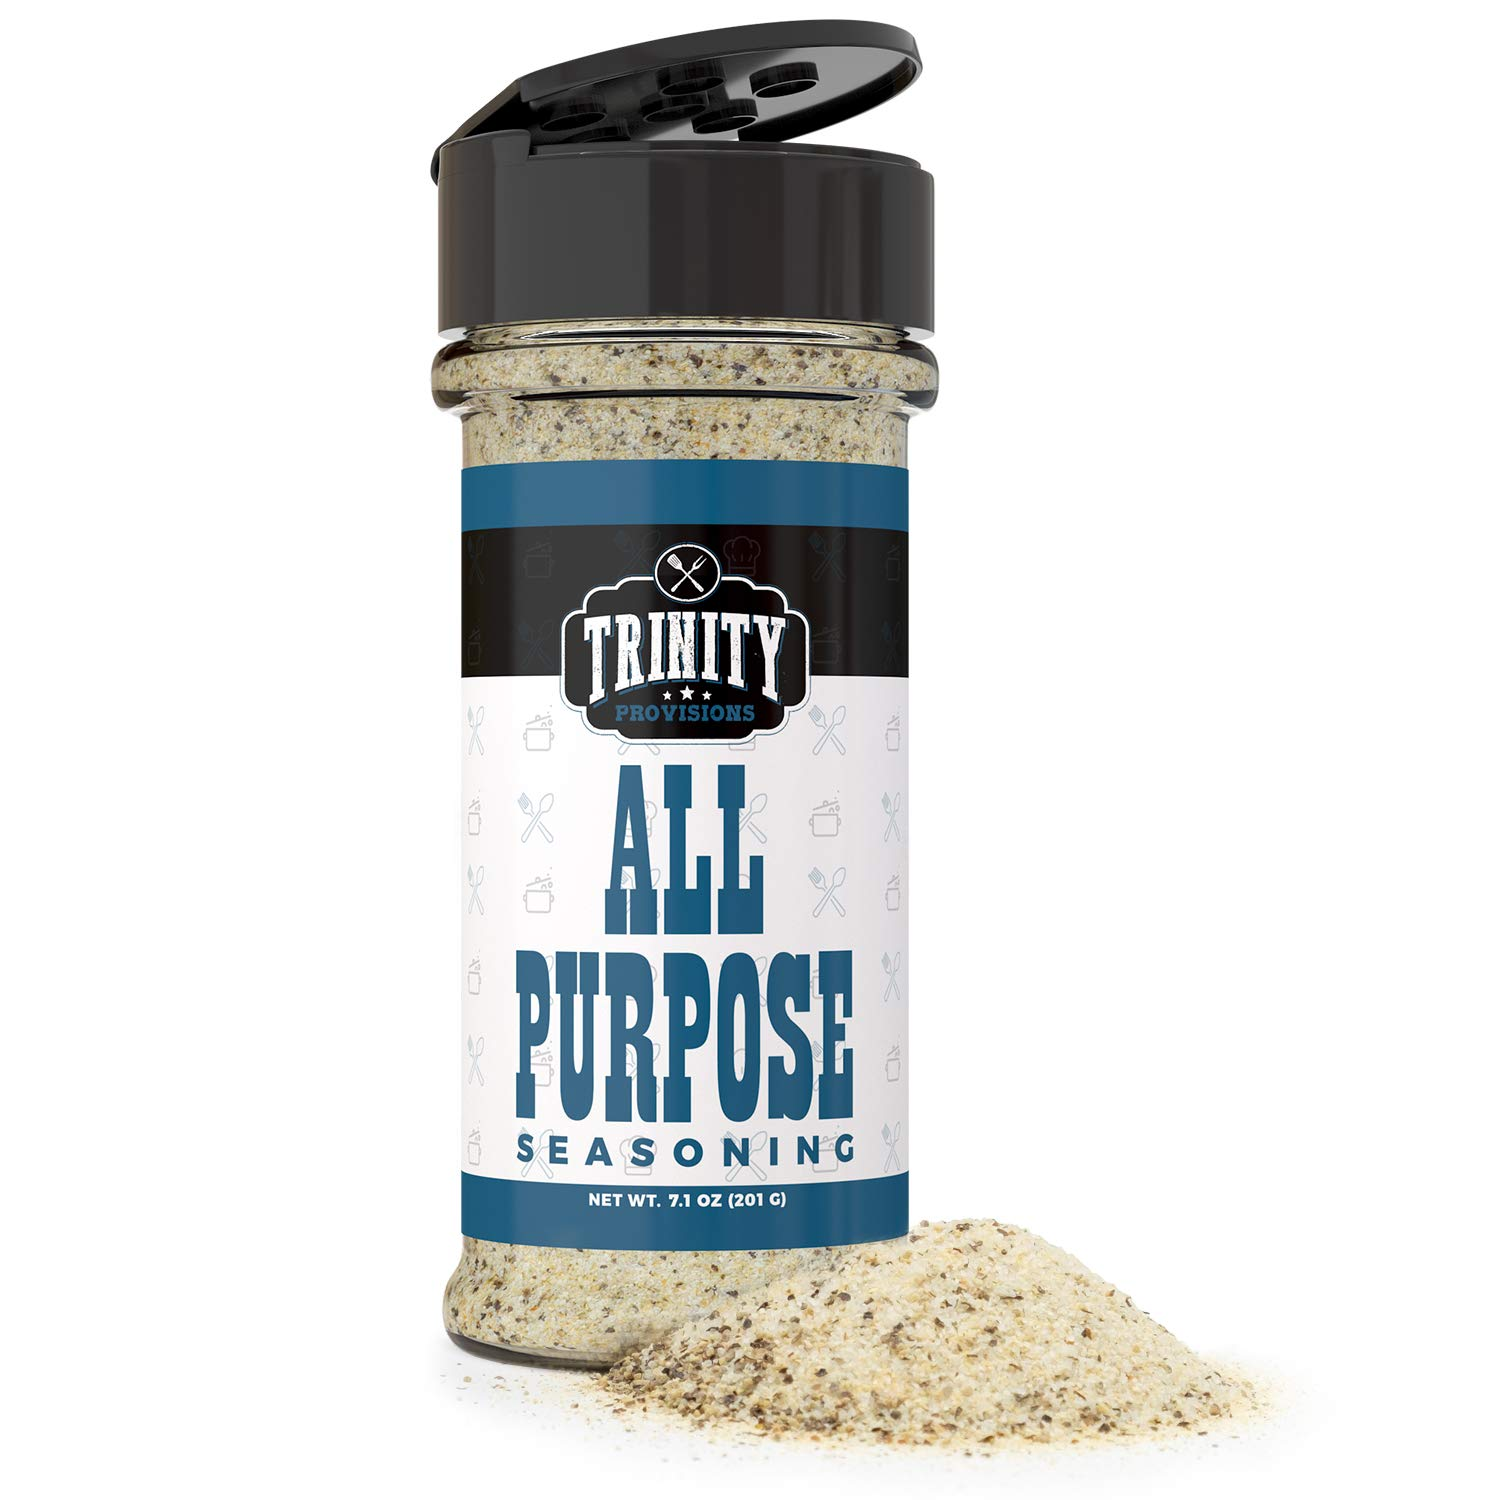 Trinity Provisions All Purpose Seasoning - Salt, Pepper & Garlic Spice Blend for Chicken, Fish, Beef, Veggies, Seafood, Eggs and More - Gluten Free, Non-GMO, and MSG Free